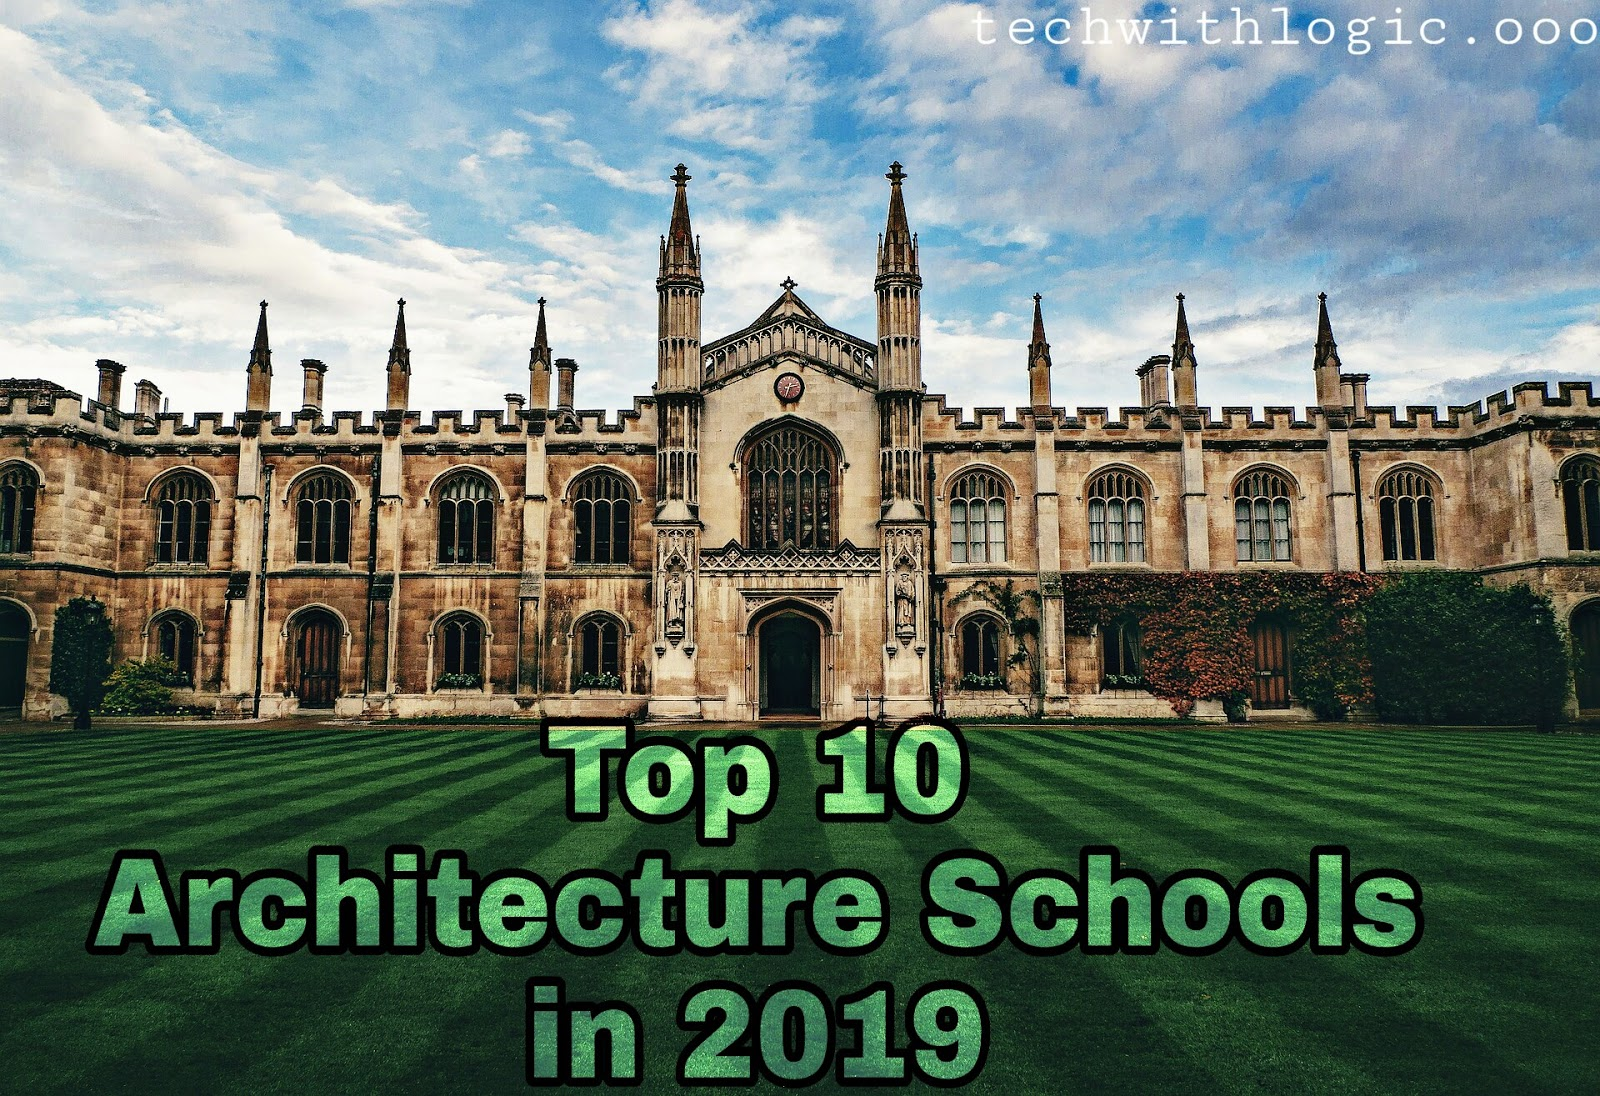 Top 10 Architecture Schools in USA in 2019